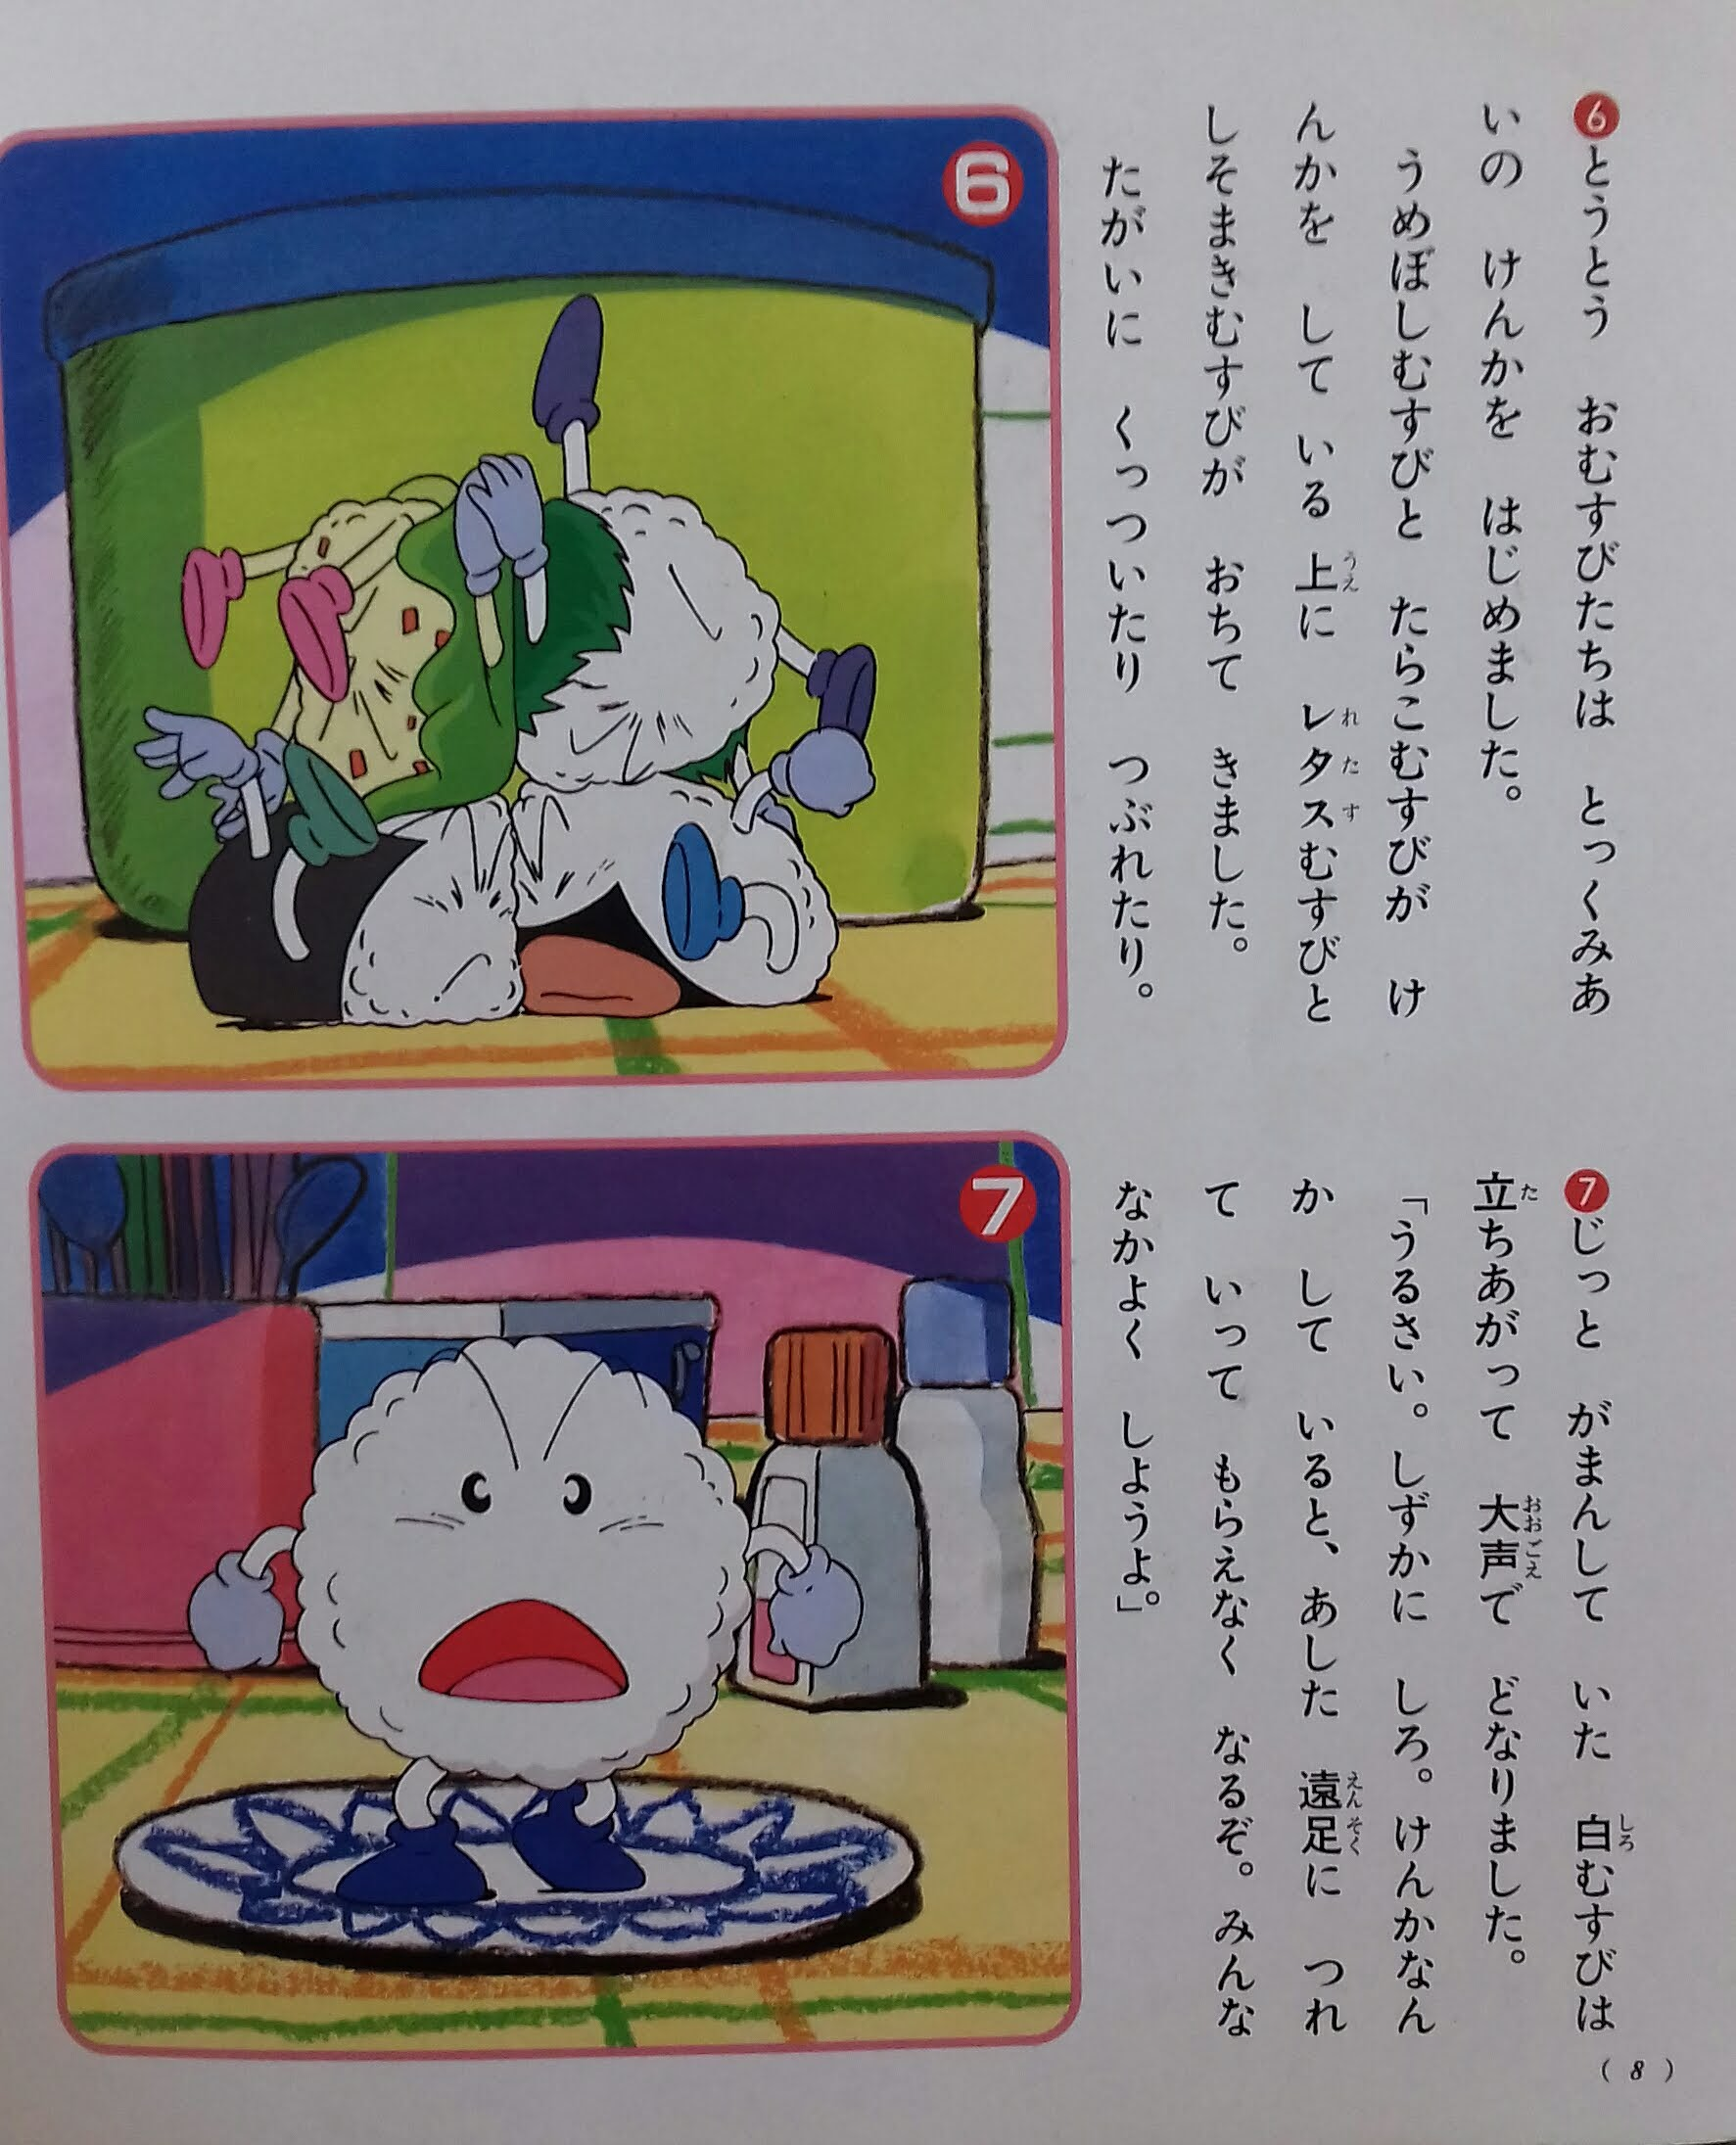 The image of rice balls are fighting each other. And One white rice ball is standing and shouting.